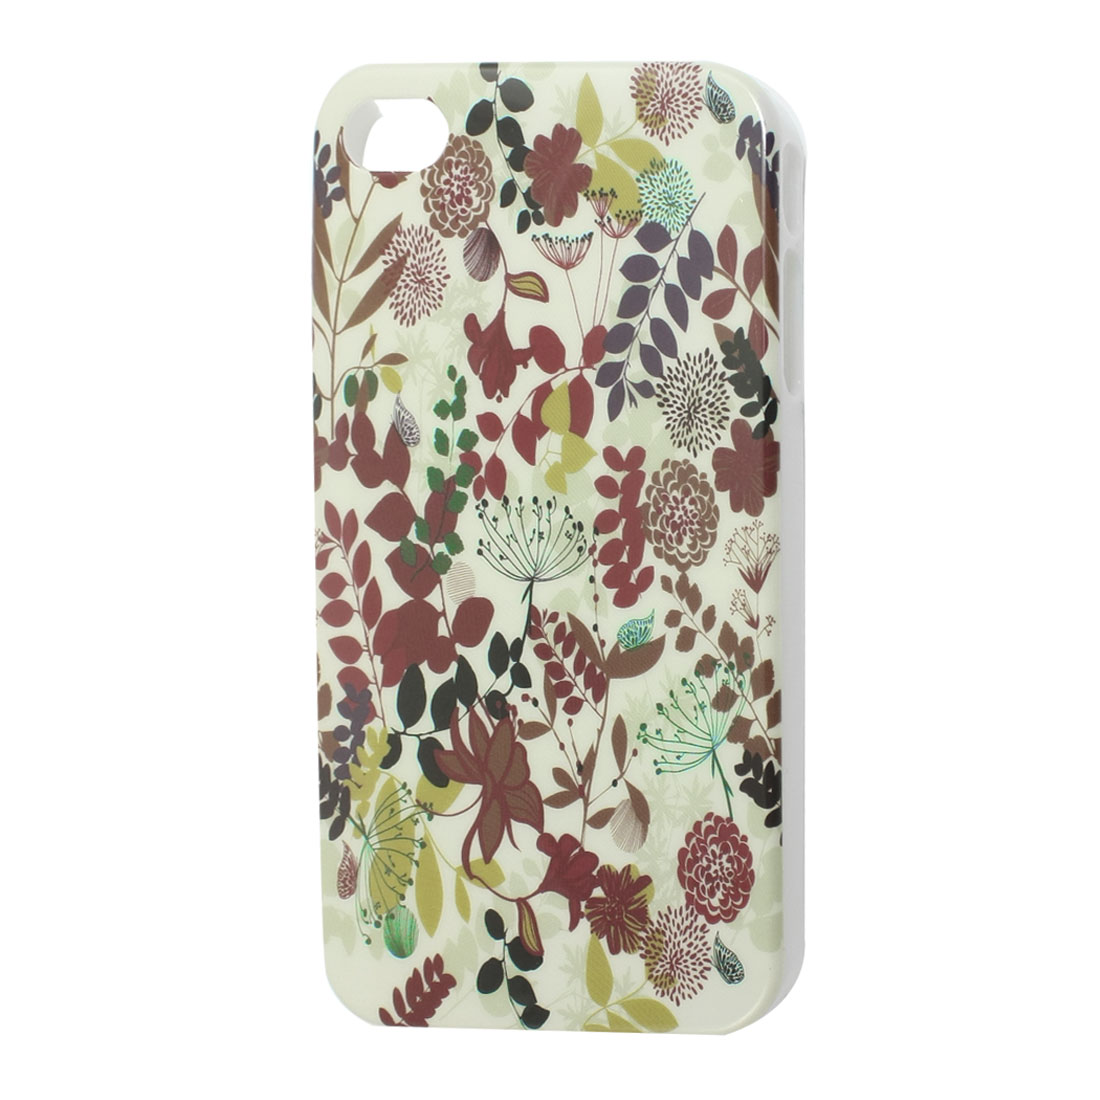 Multicolor Flower Leave Pattern IMD Hard Back Case Cover for iPhone 4S 4GS